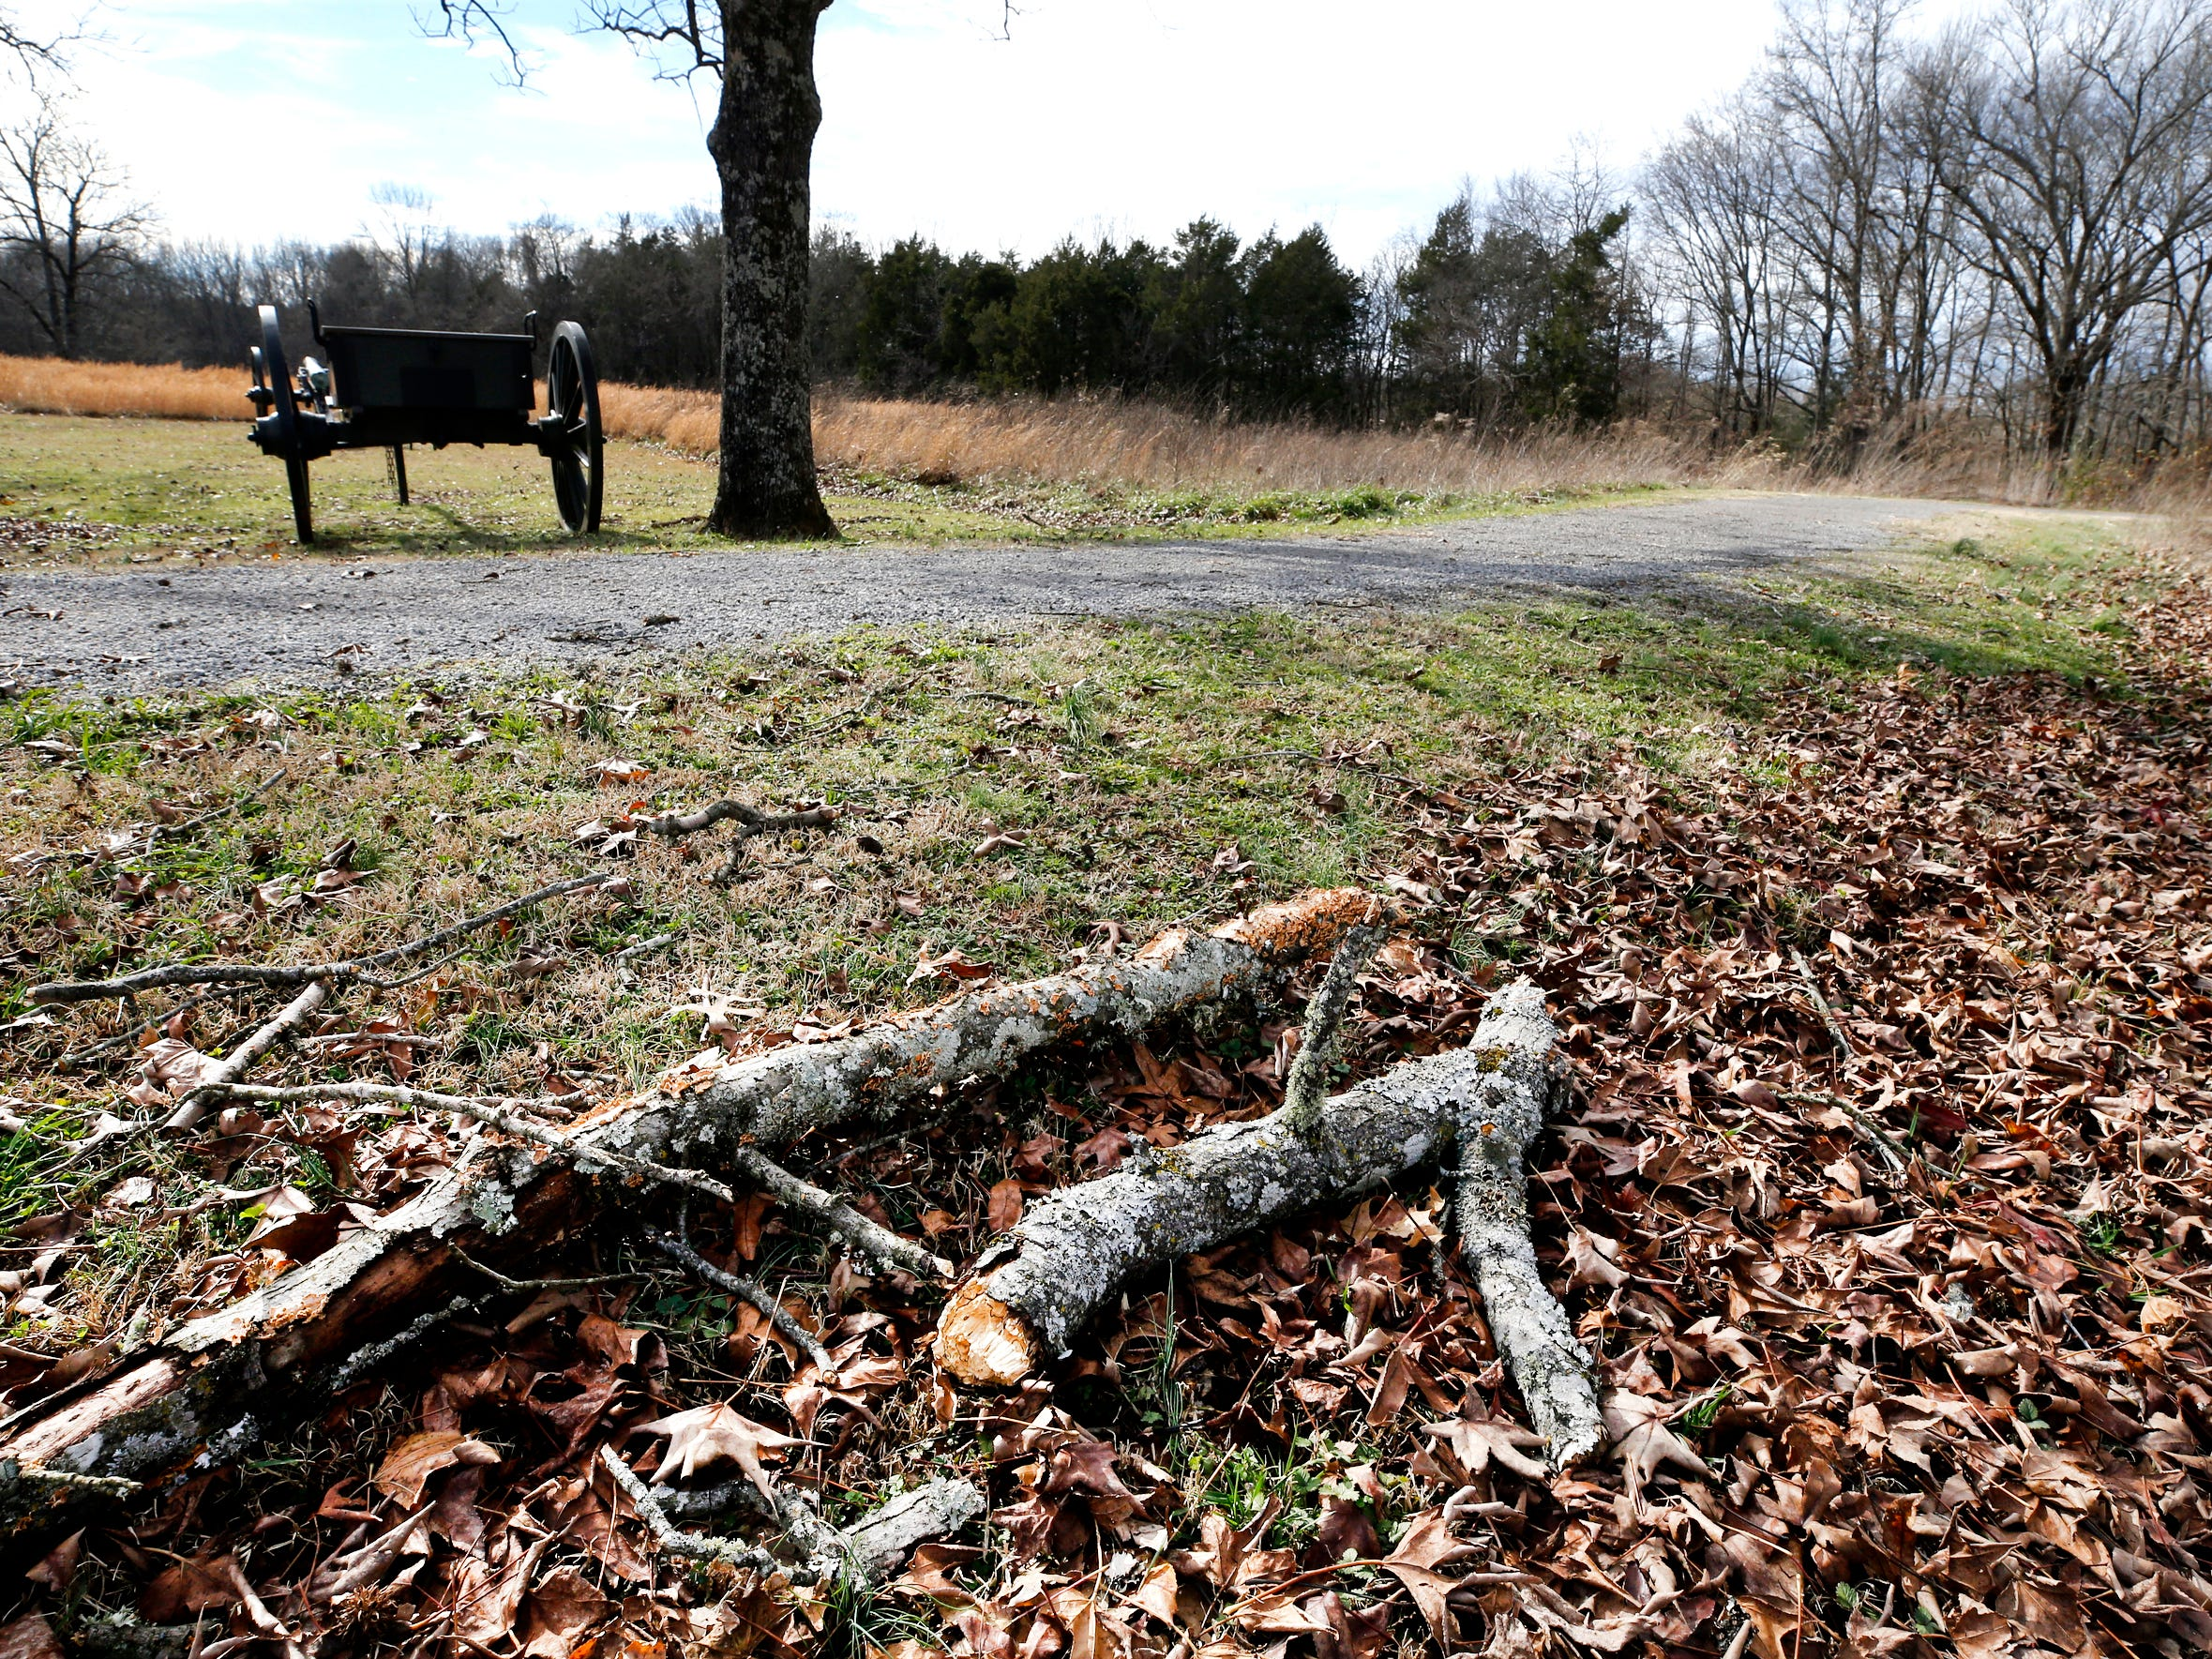 Branches are scattered along the ground  at The Stones River National Battlefield, which is still closed on Thursday Jan. 7, 2019, after the government shutdown on Dec. 22, 2018.